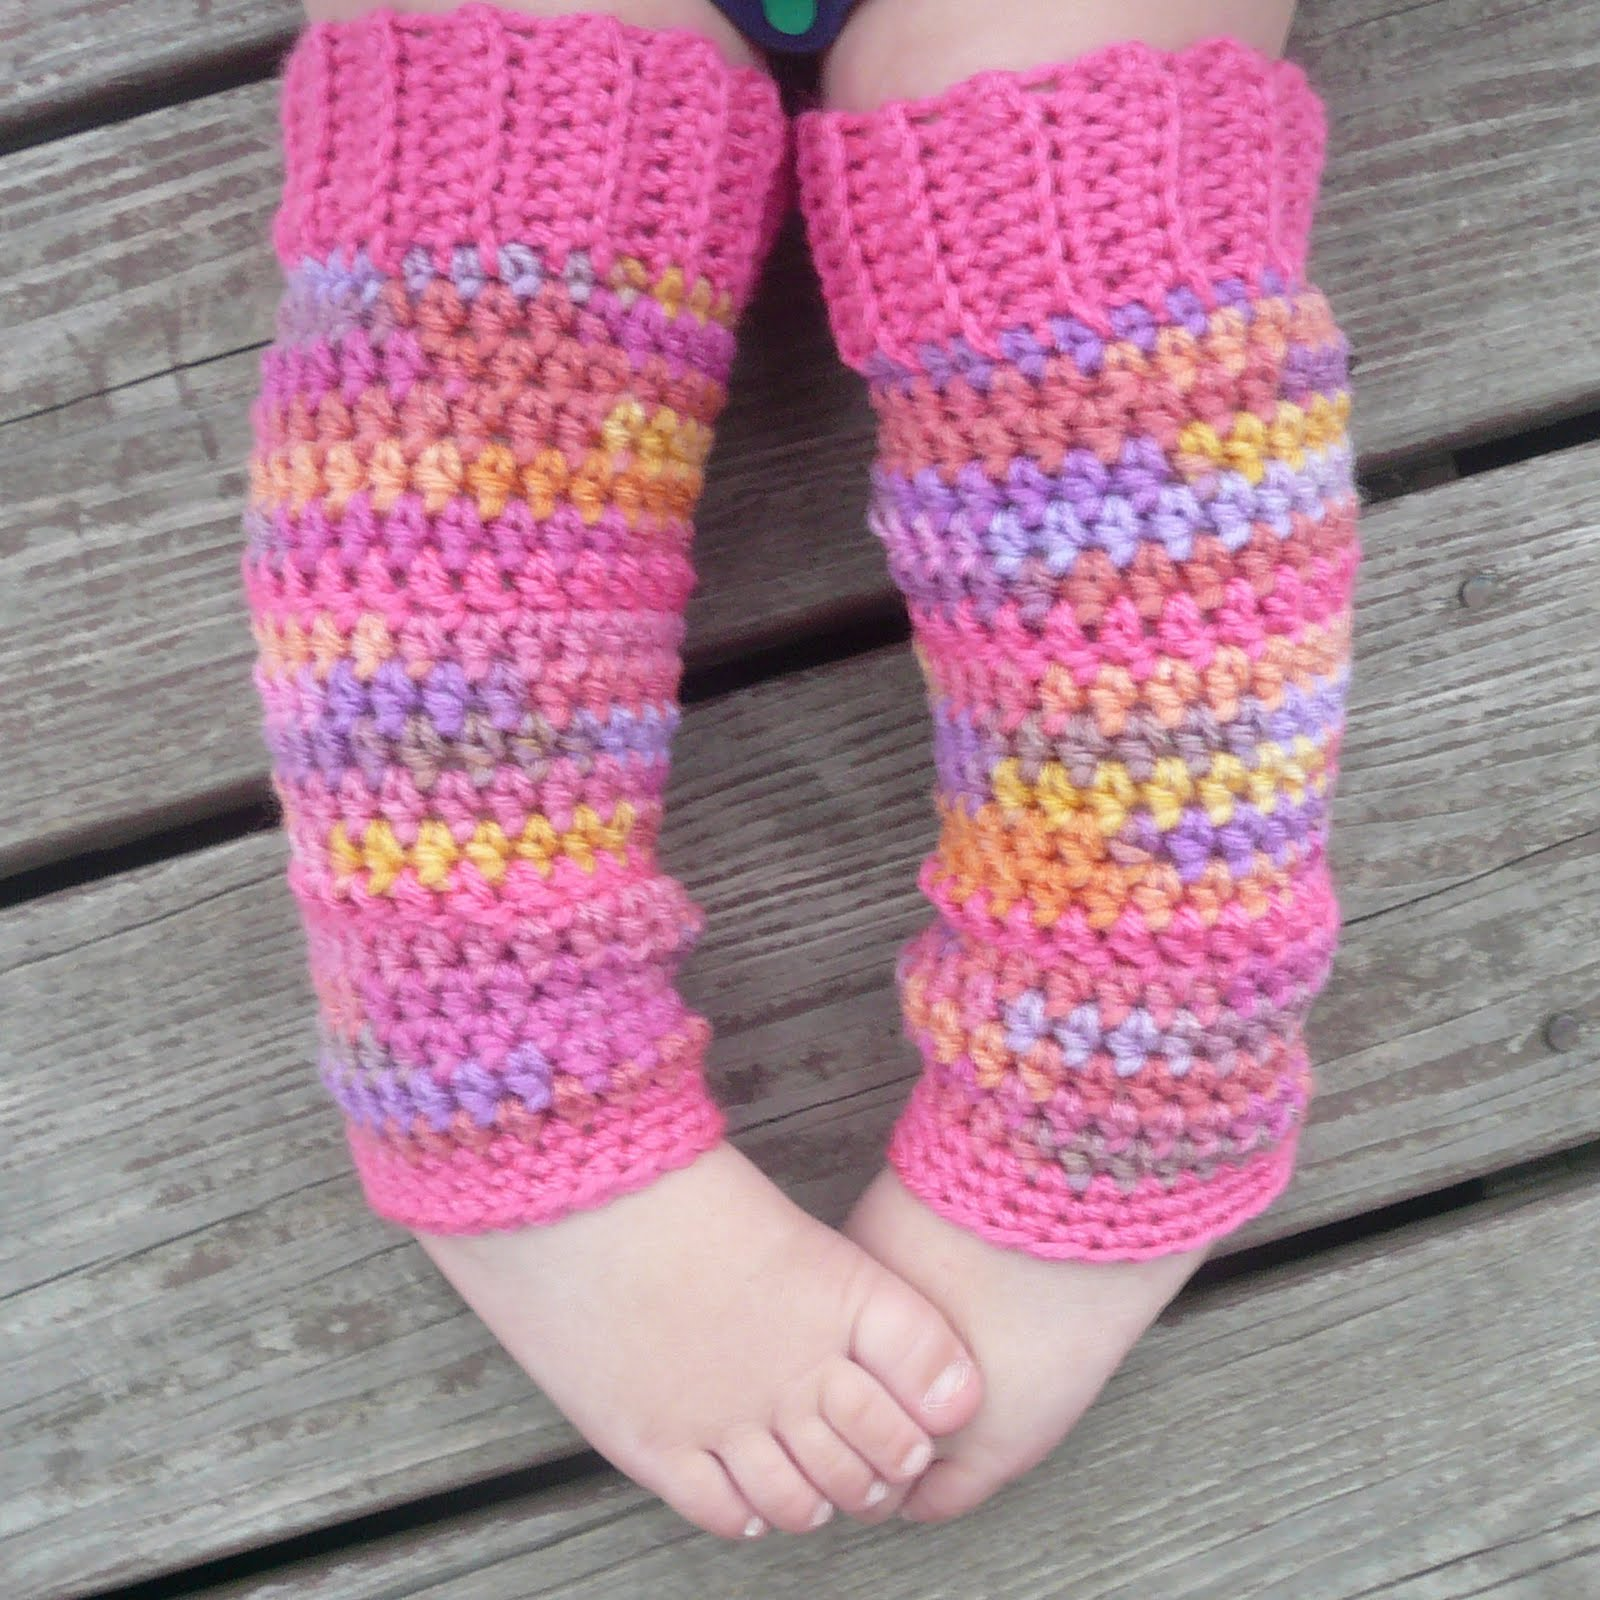 Crochet Free Patterns For Leg Warmers : Danyel Pink Designs: CROCHET PATTERN - Baby Legwarmers